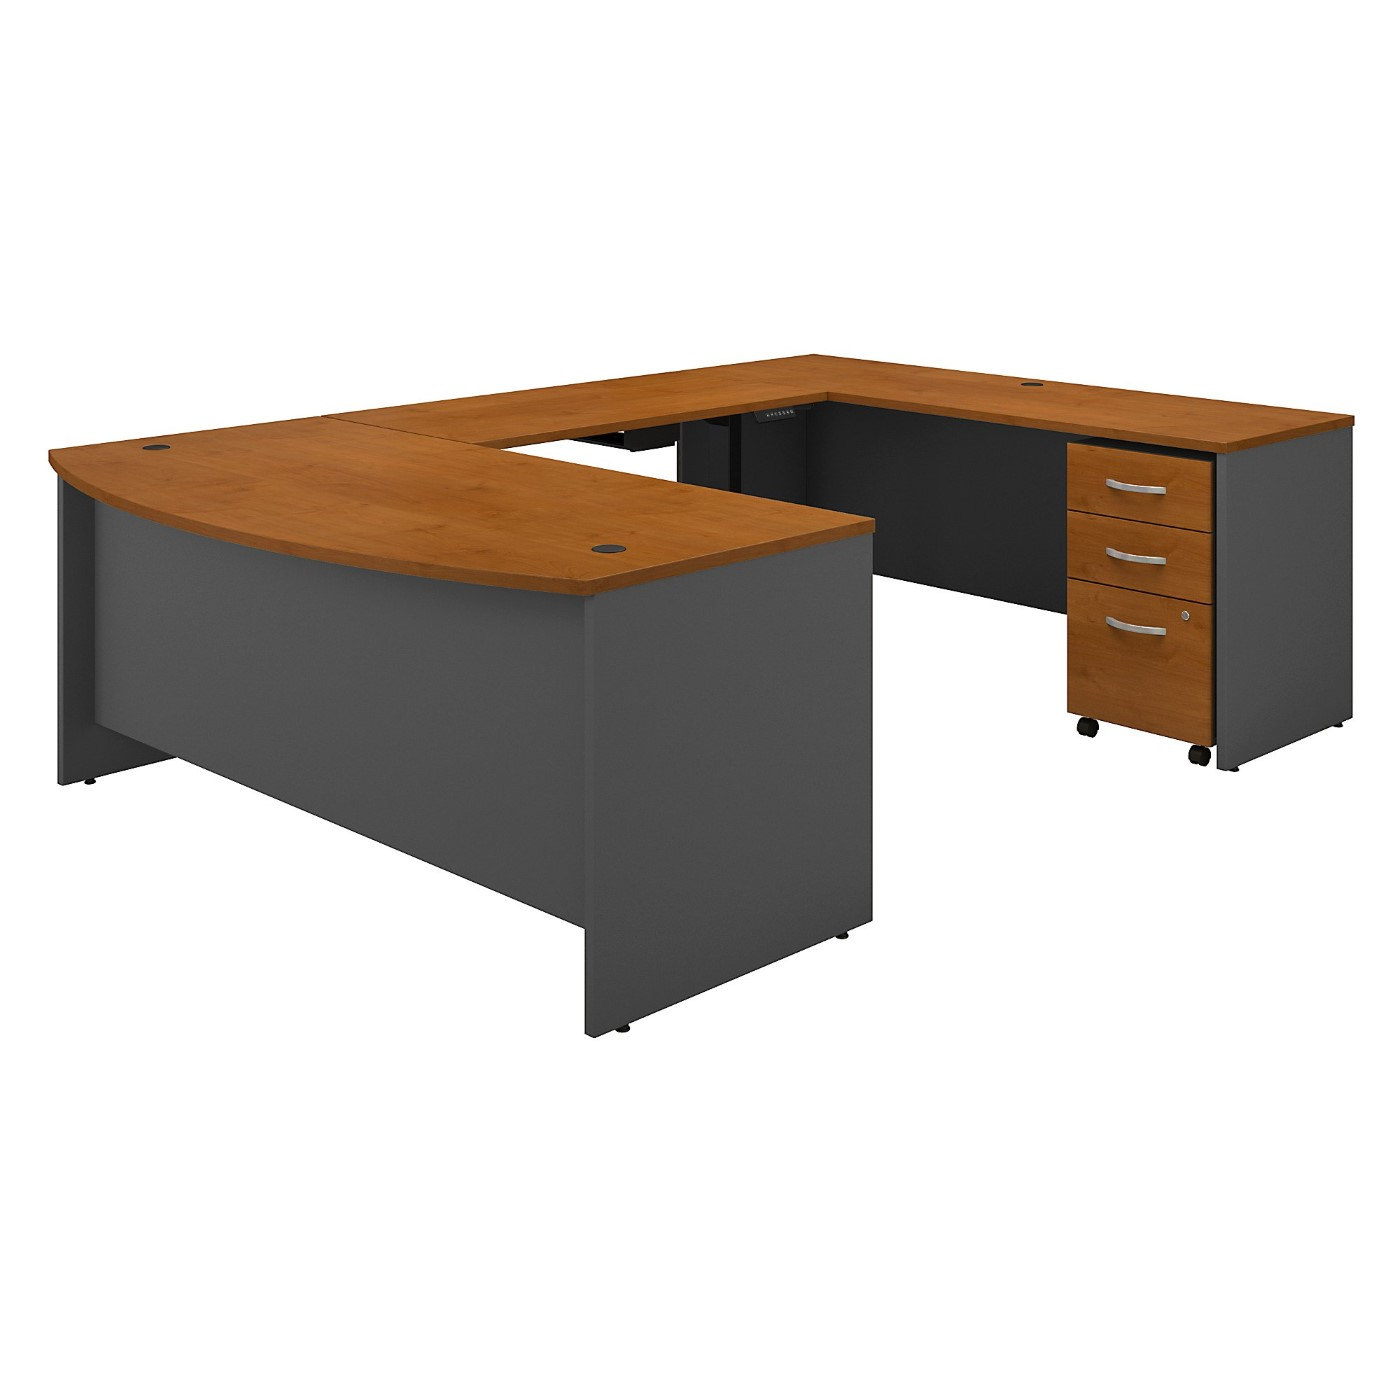 BUSH BUSINESS FURNITURE SERIES C 72W U SHAPED DESK WITH HEIGHT ADJUSTABLE BRIDGE AND STORAGE. FREE SHIPPING